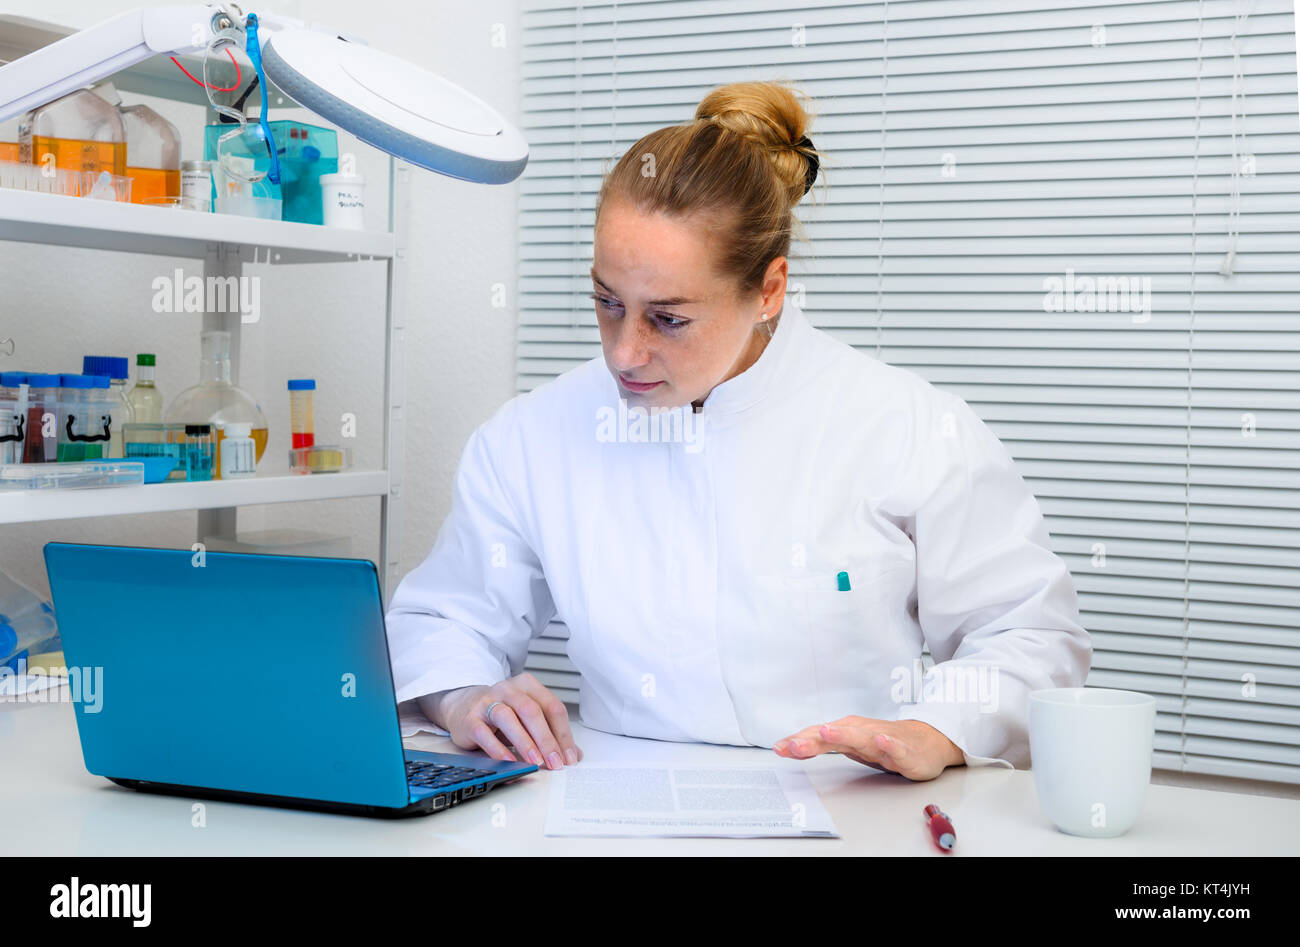 Experienced scientist works with portable computer in research laboratory - Stock Image